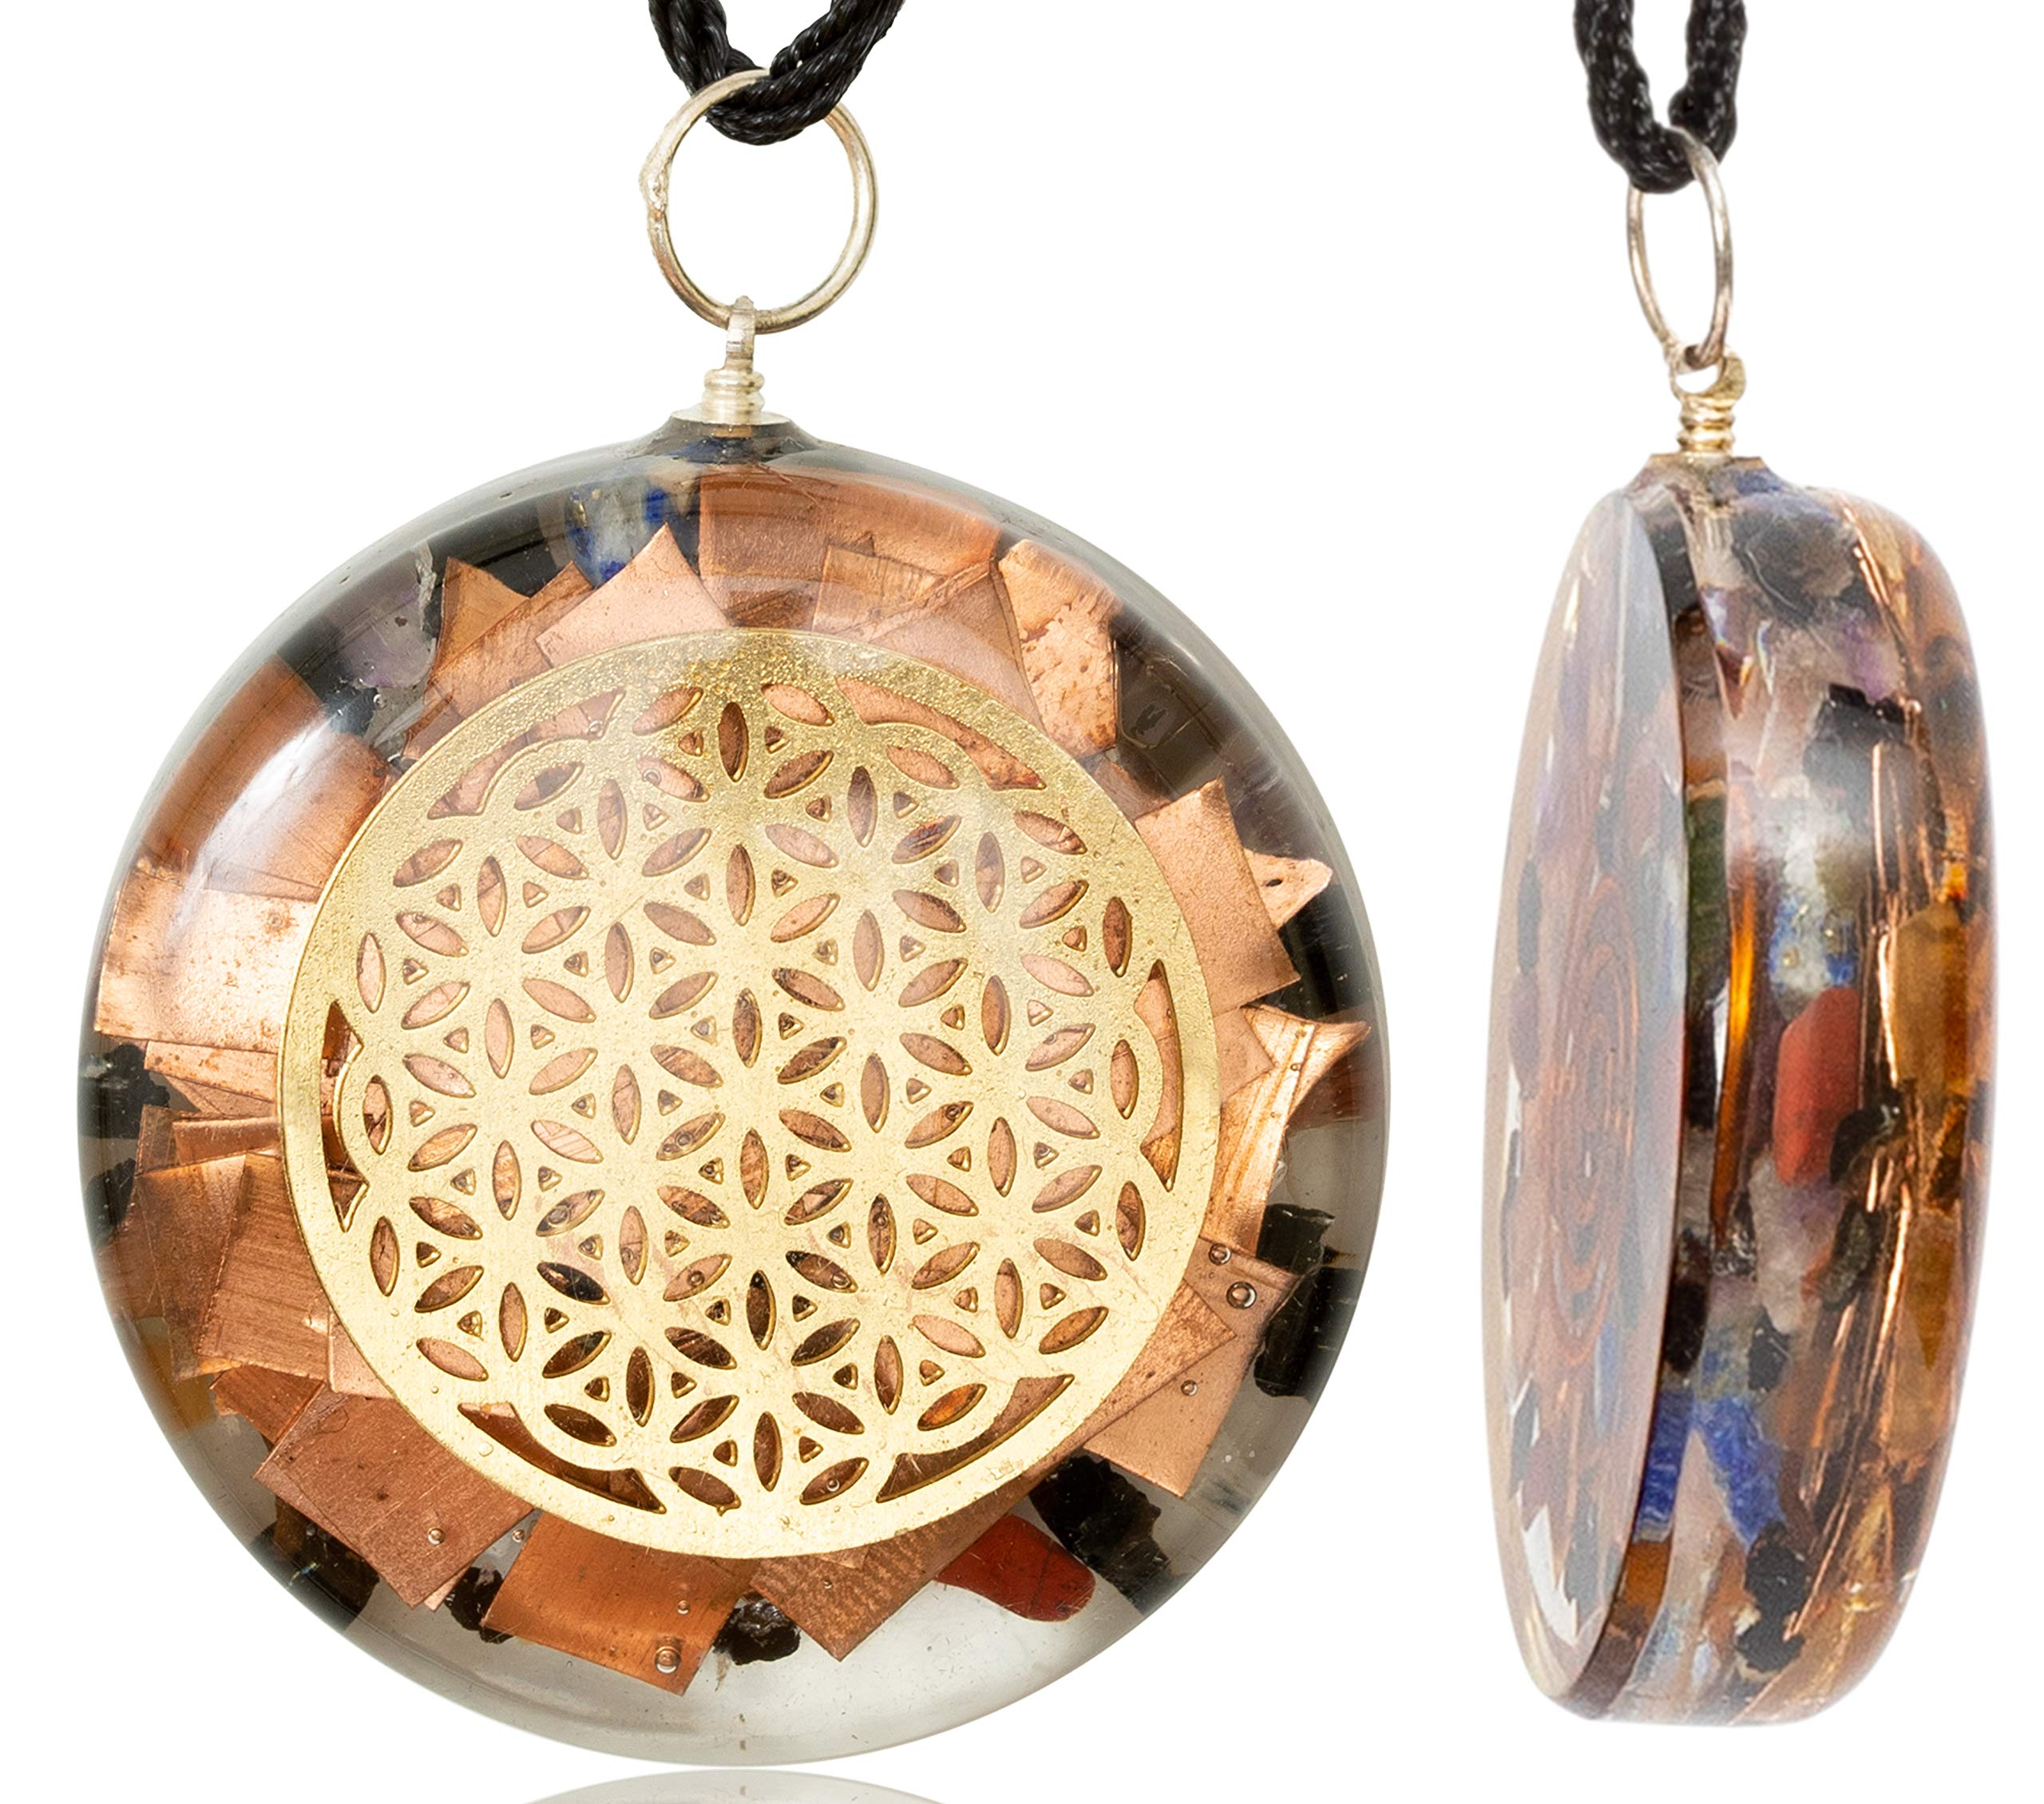 QUANTHOR 1.6 inch Flower of Life Orgone Pendant Generator Energy Accumulator EMF Protection | Reiki Charged Orgonite Pendants | EMF Radiation Protection Energy Pendant by QUANTHOR